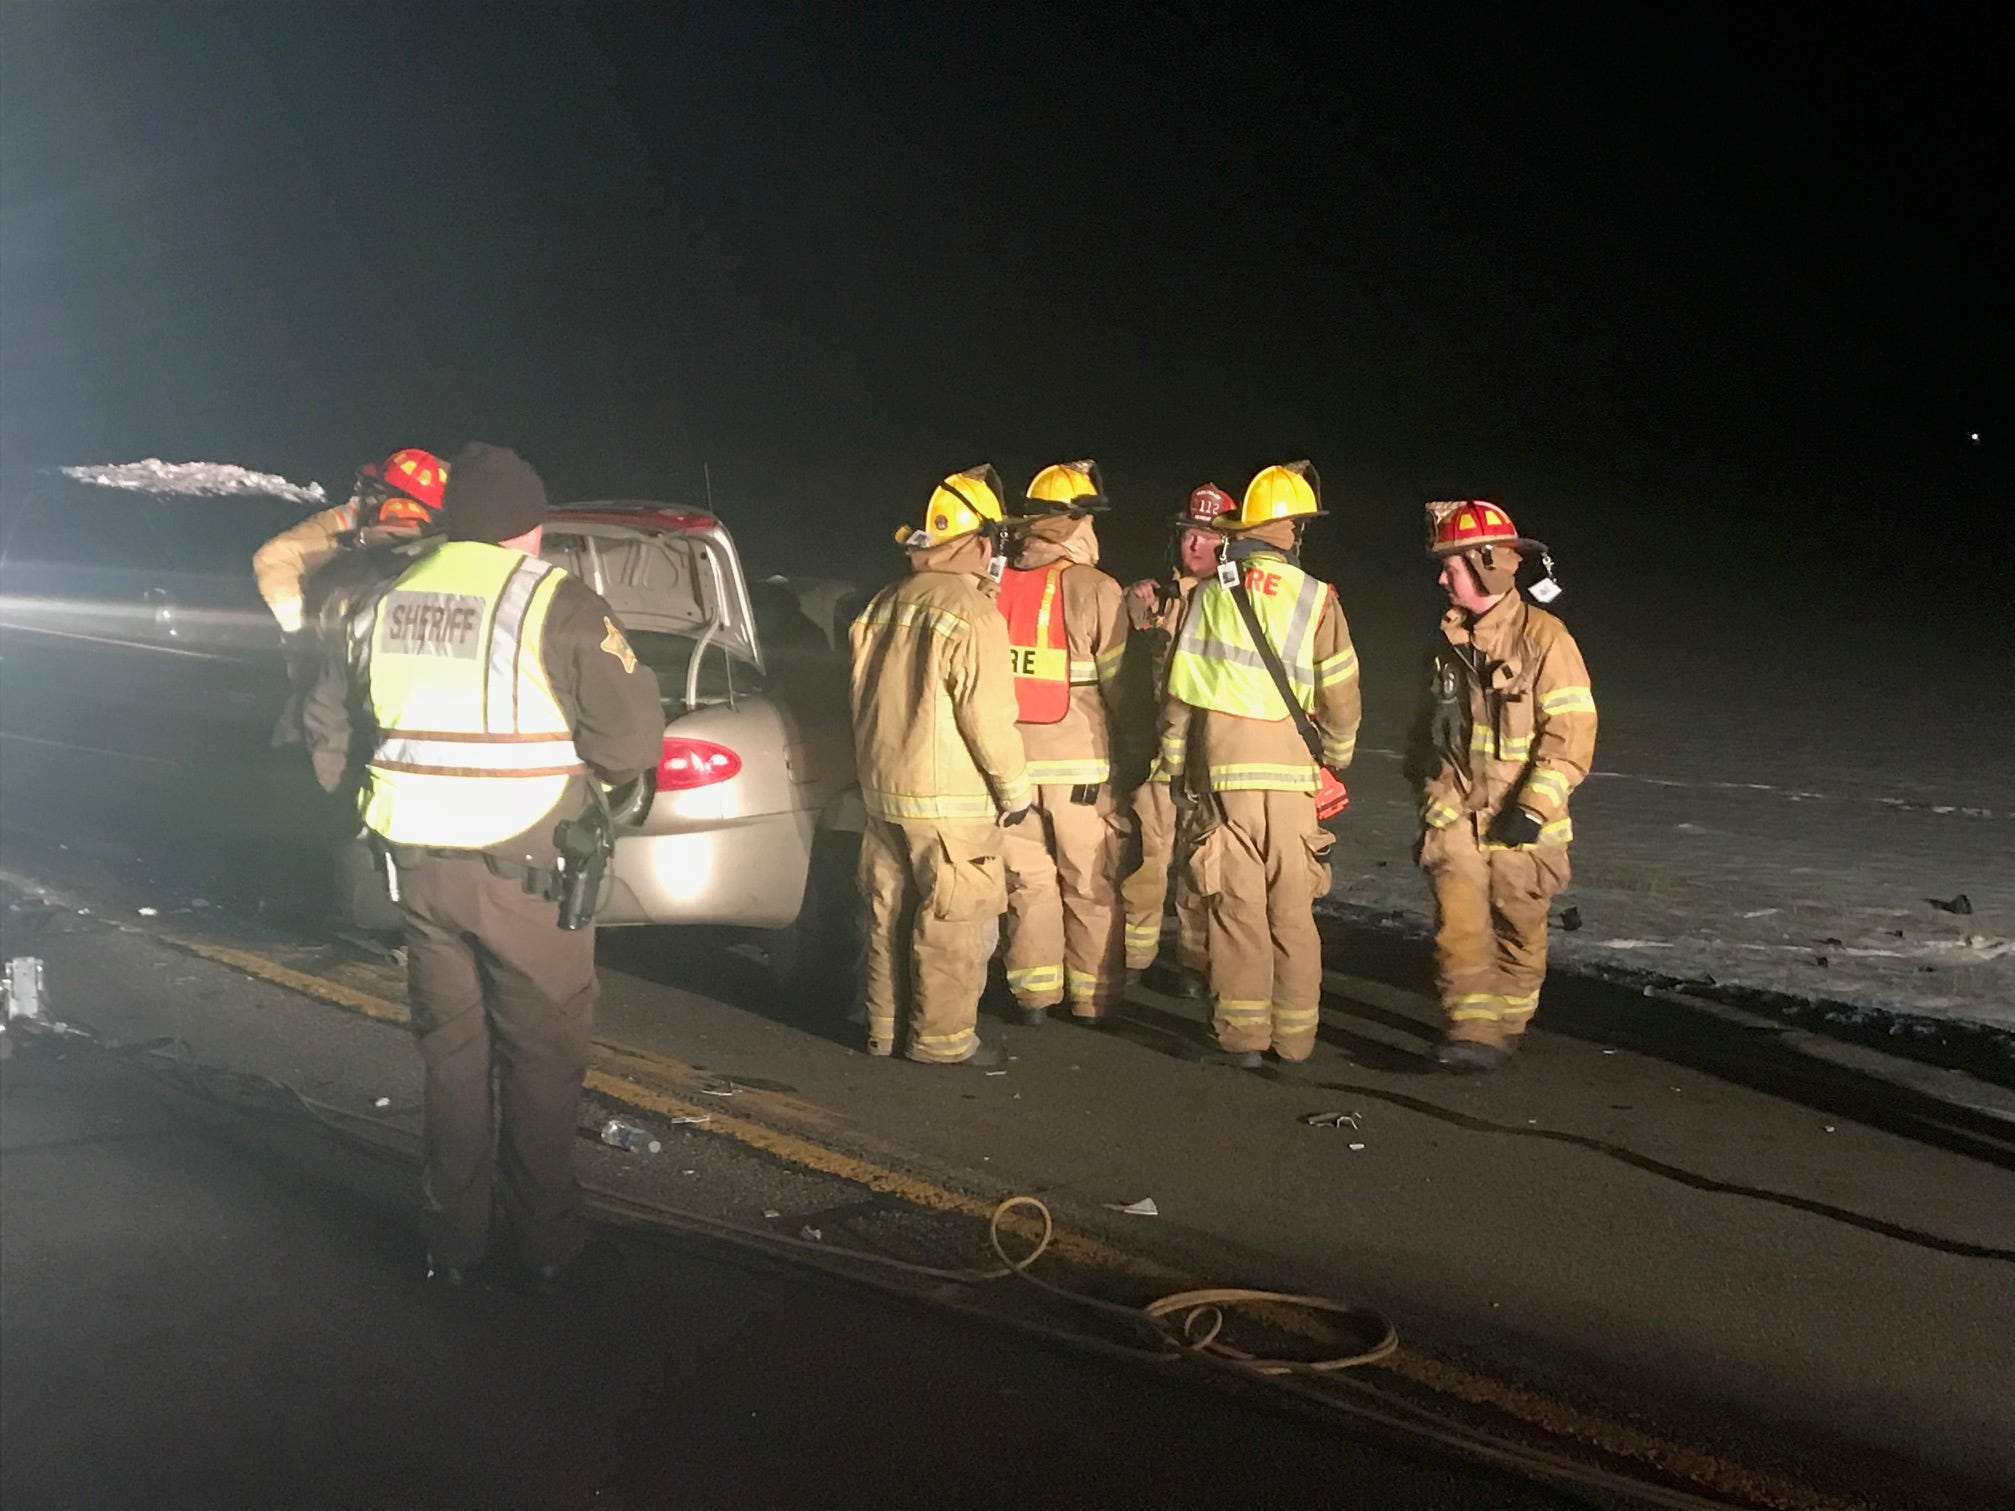 One person was killed and another seriously injured late Wednesday in a head-on collision on Ind. 67 northeast of Muncie.